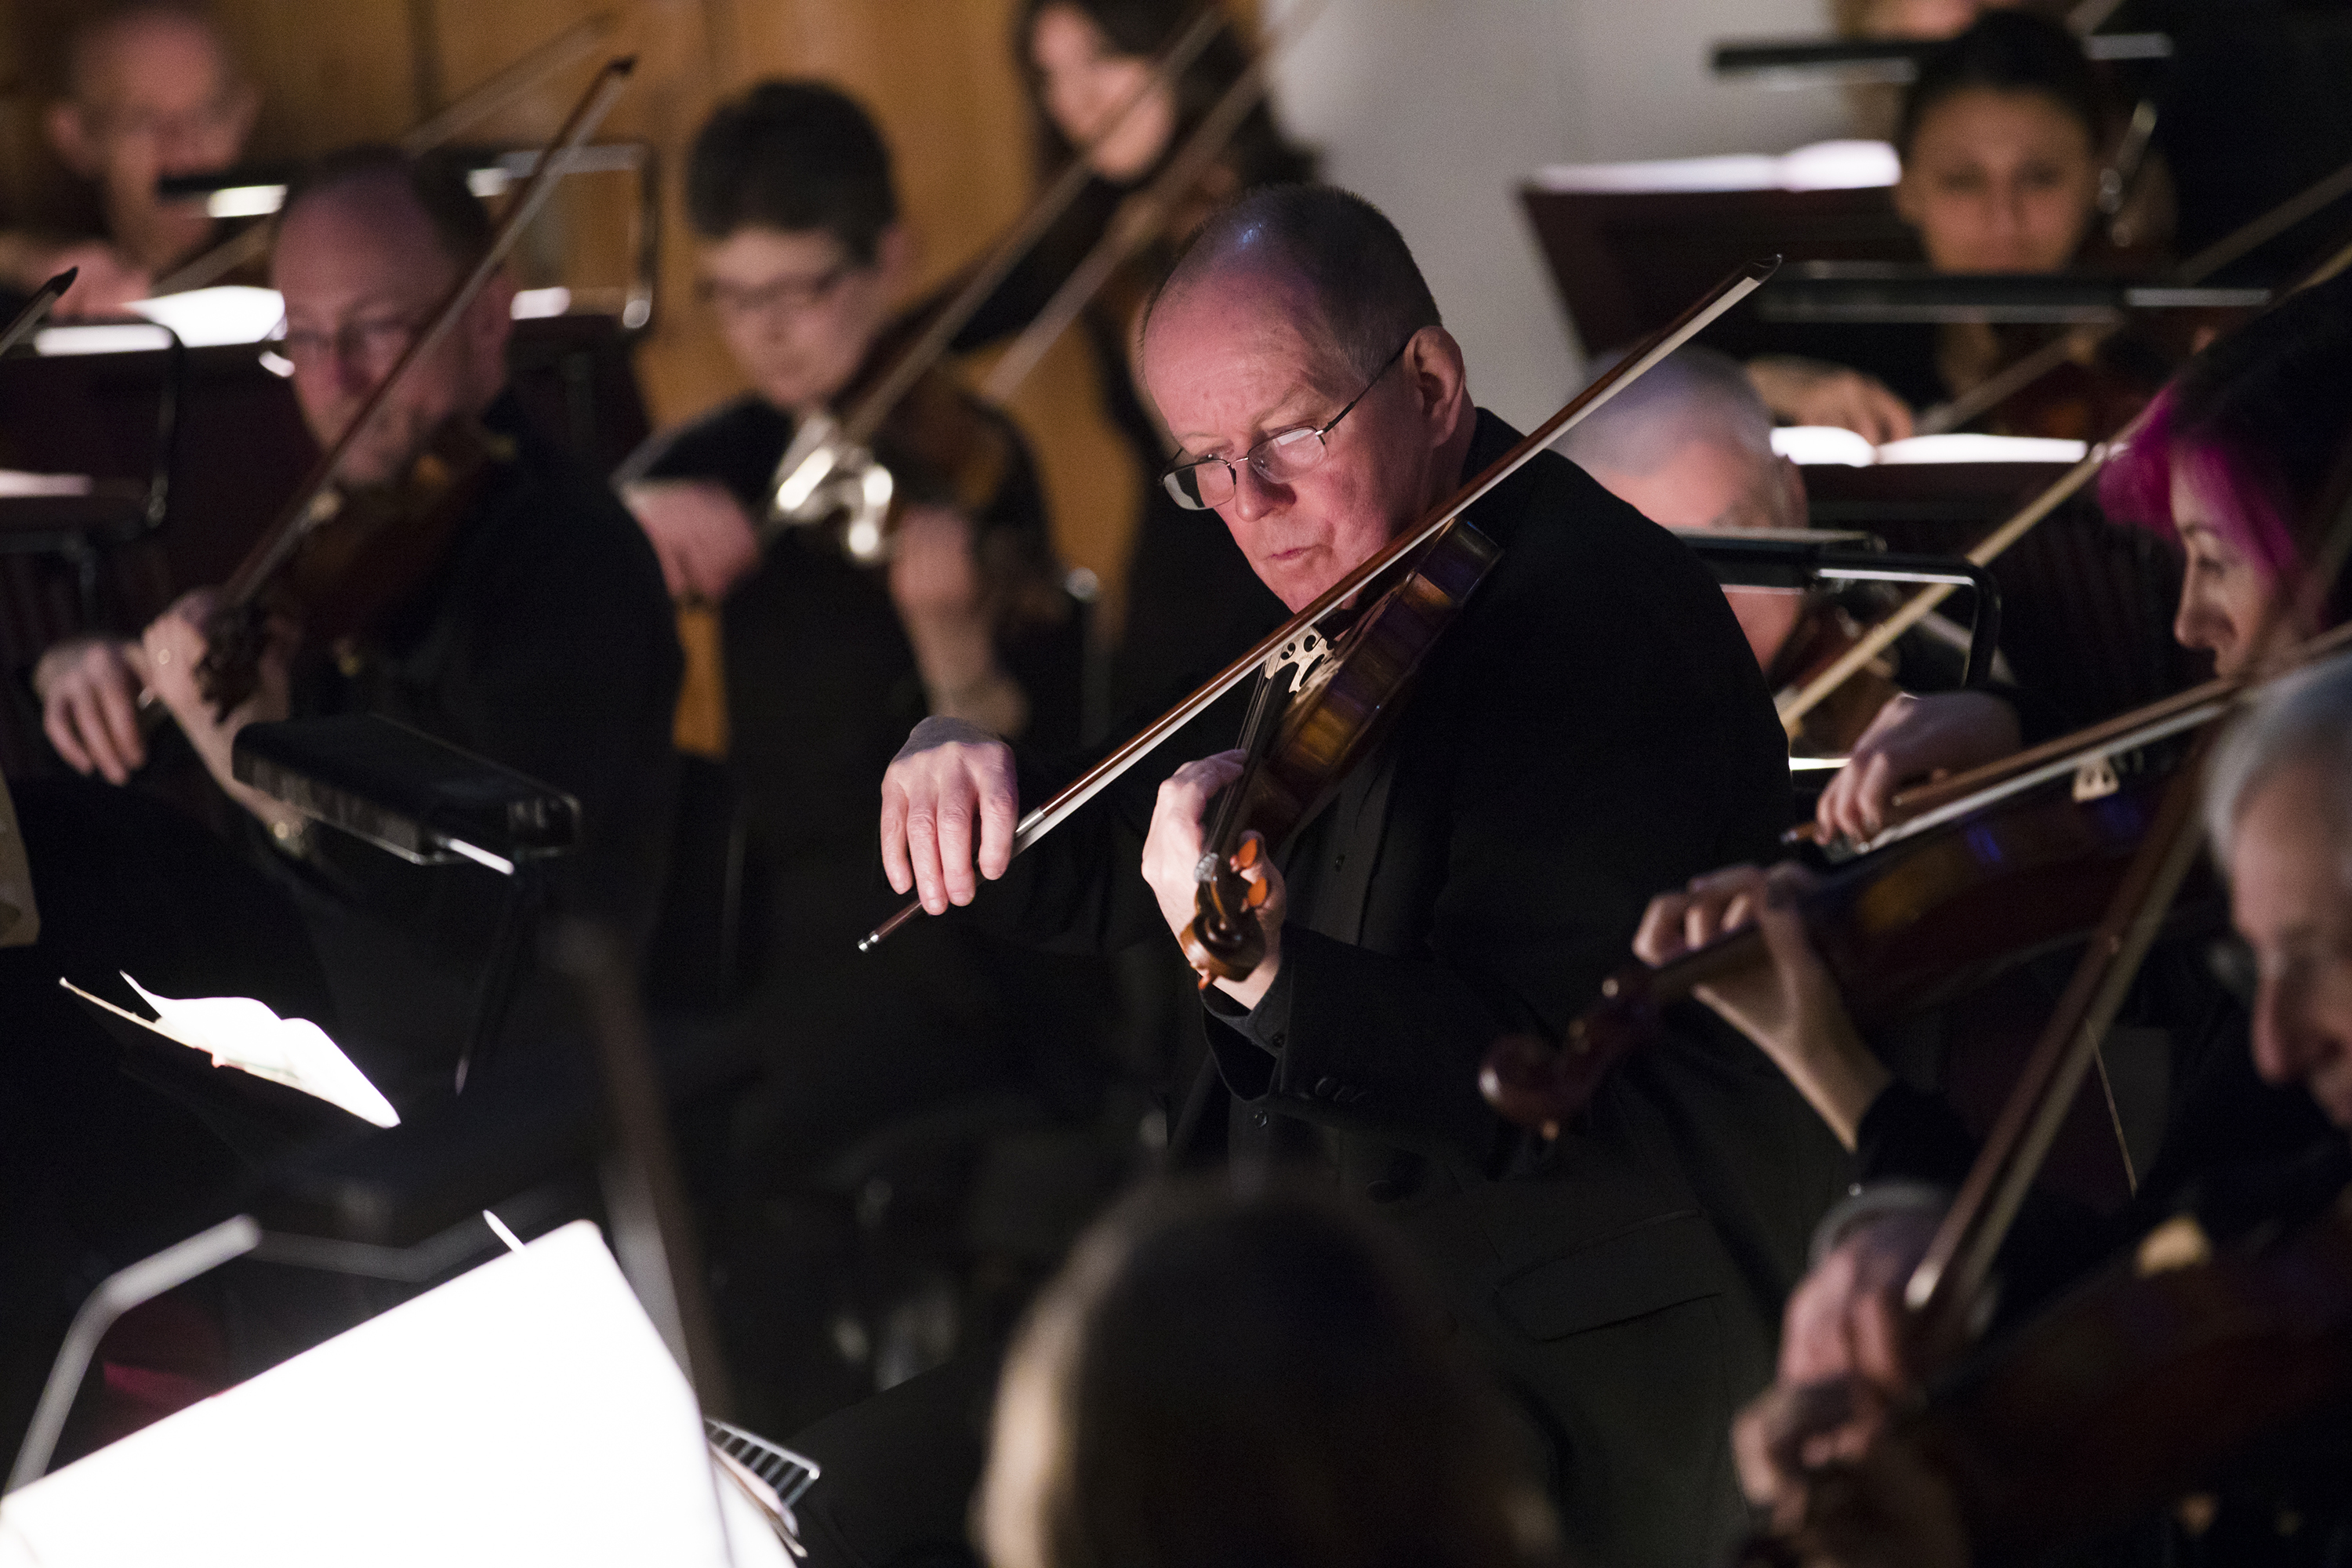 A man playing in the violin section of the orchestra